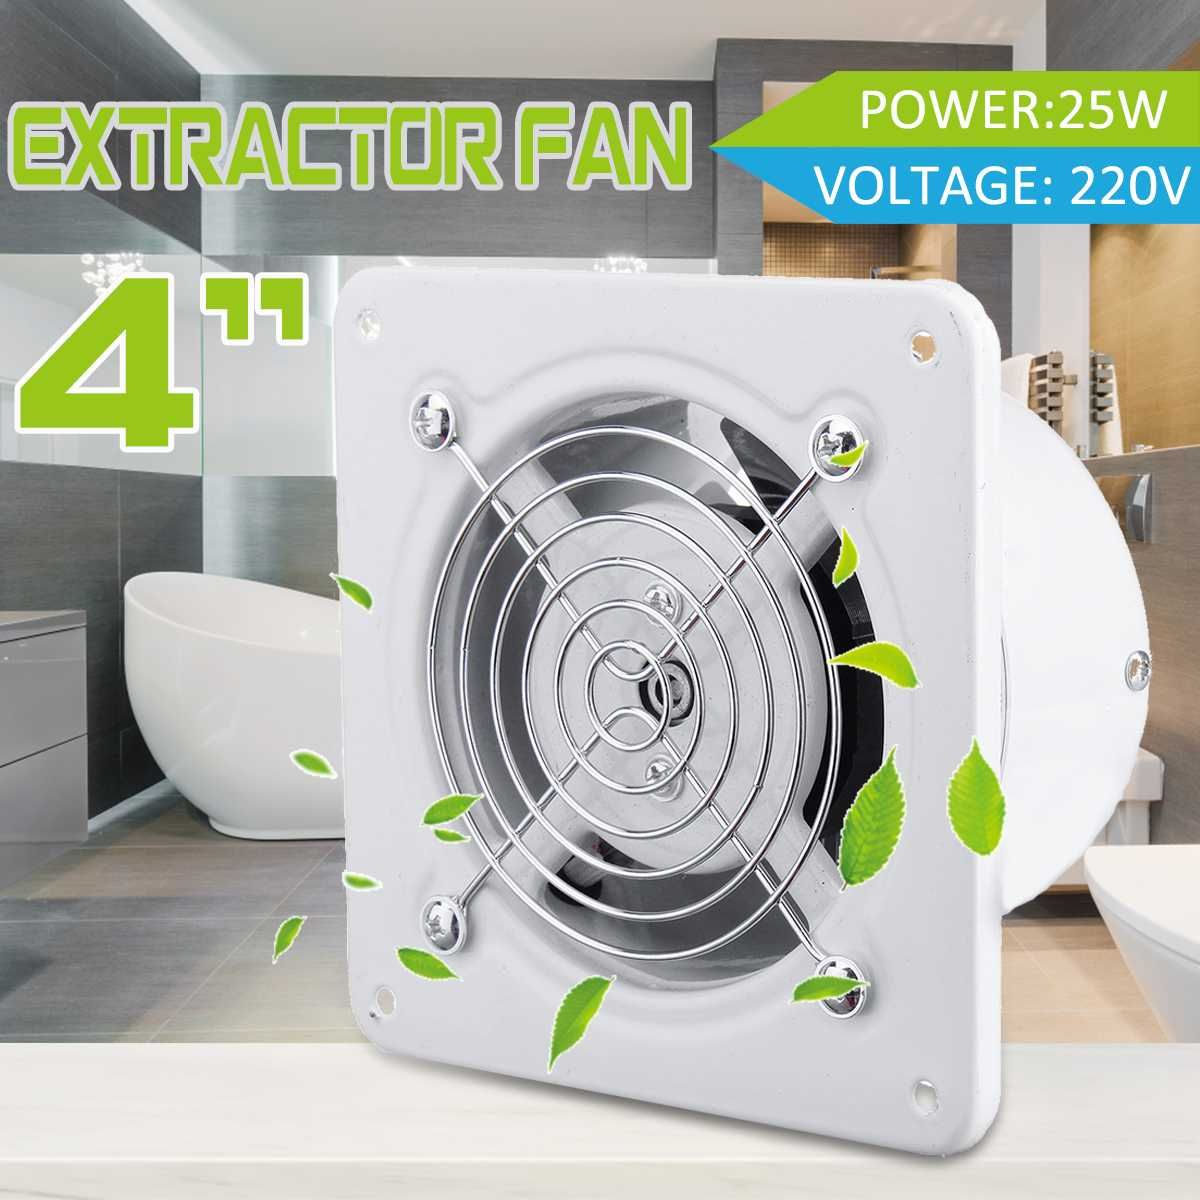 4 25w Home Air Vents Exhaust Fan 220v Window Type Silent Wall Extractor Ventilation Fan Window Bathroom Kitchen Toilet Vents Air Vent Bathroom Windows Window Types